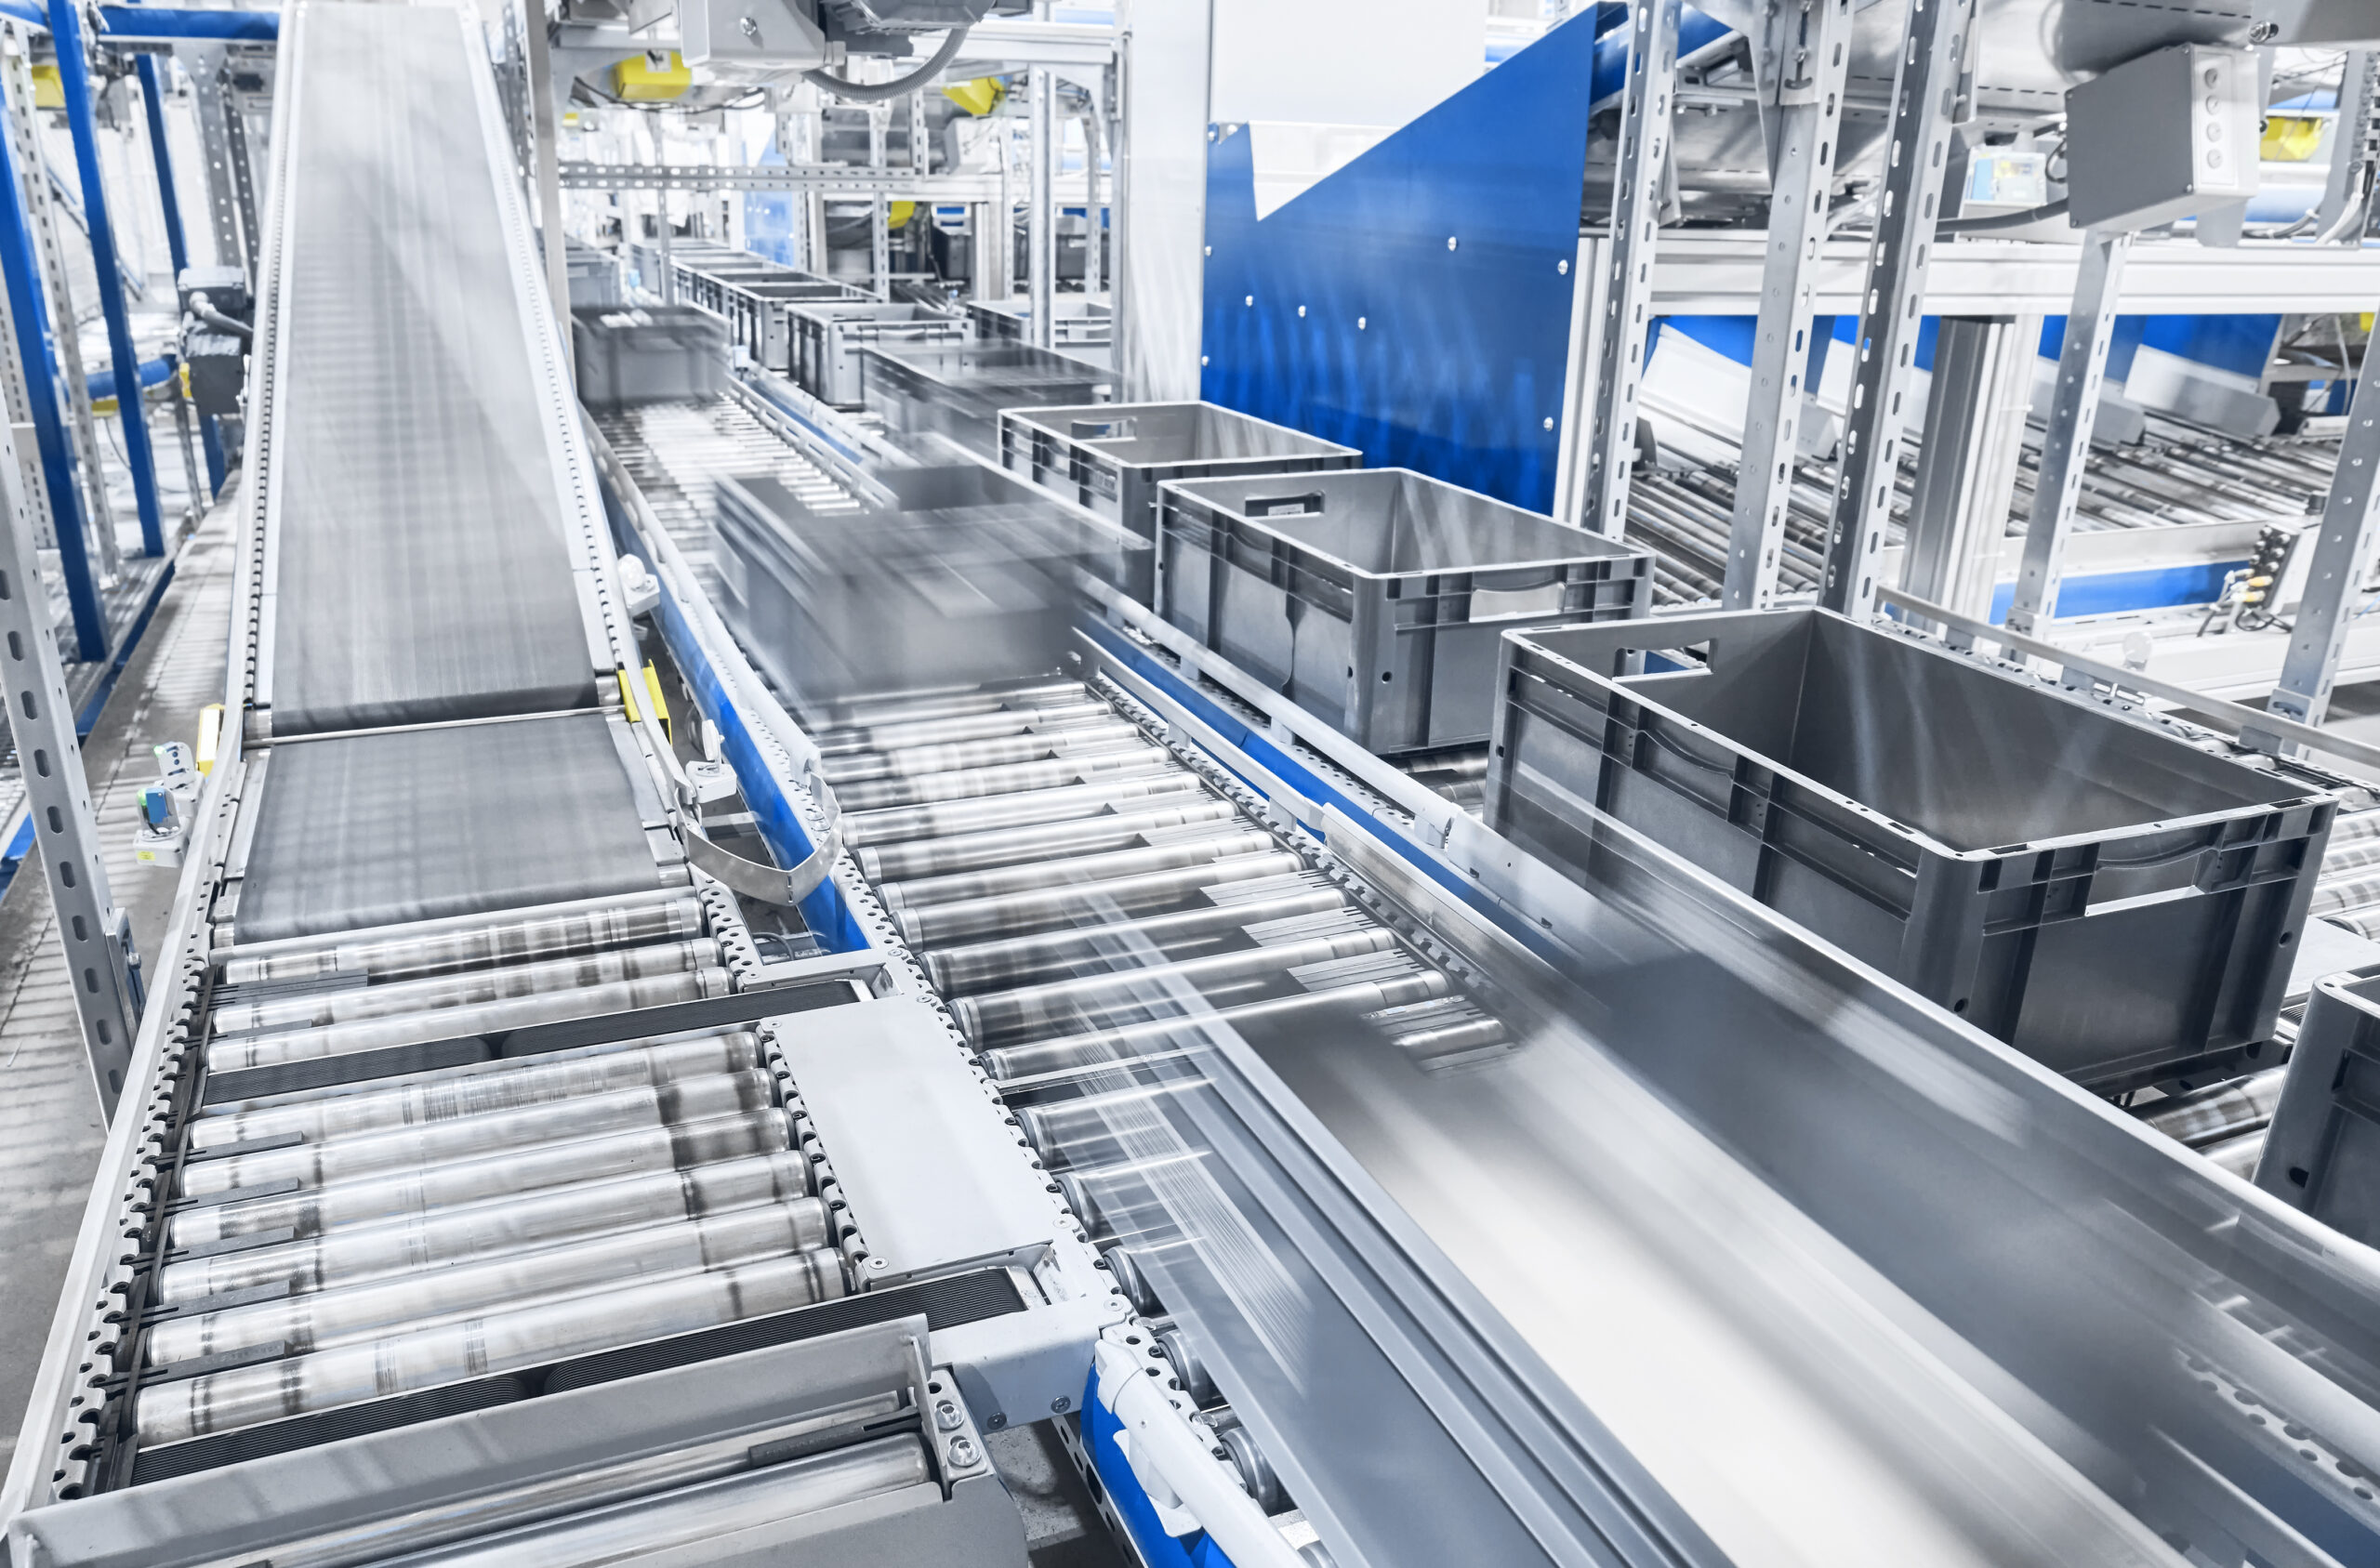 Mission Critical: Reusable Packaging is Optimizing the New Wave of Supply Chain Automation